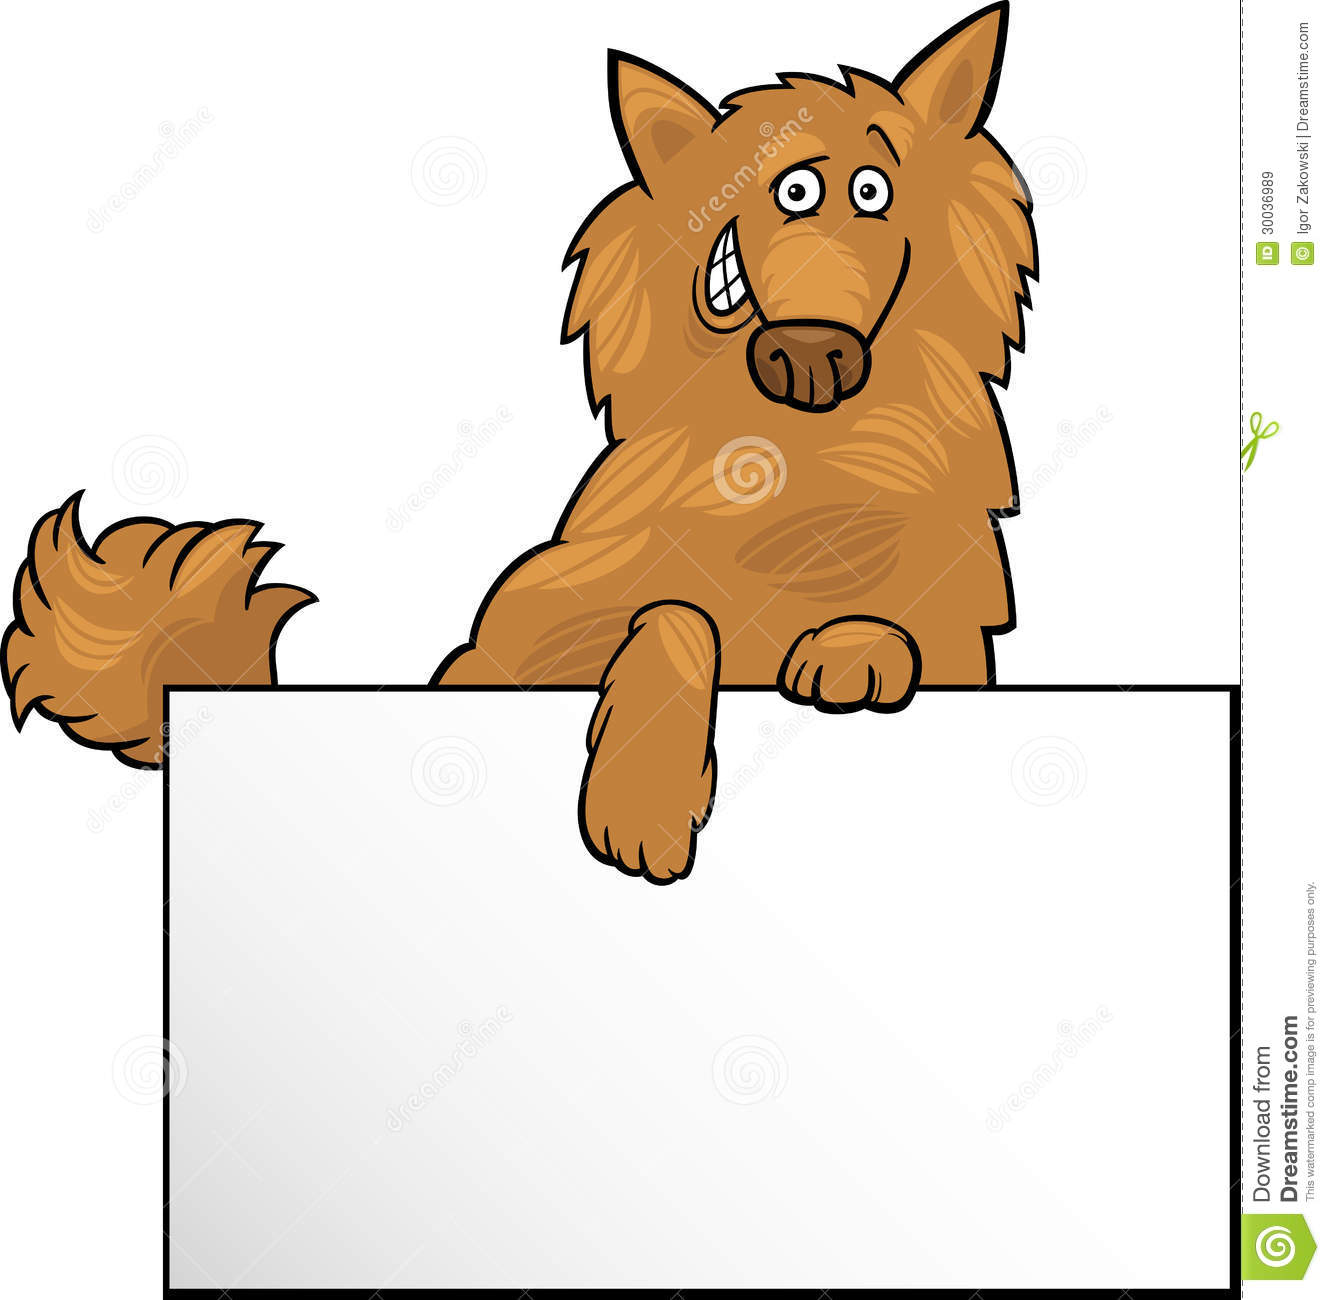 Cartoon Dog With Board Or Card Design Royalty Free Stock Images.